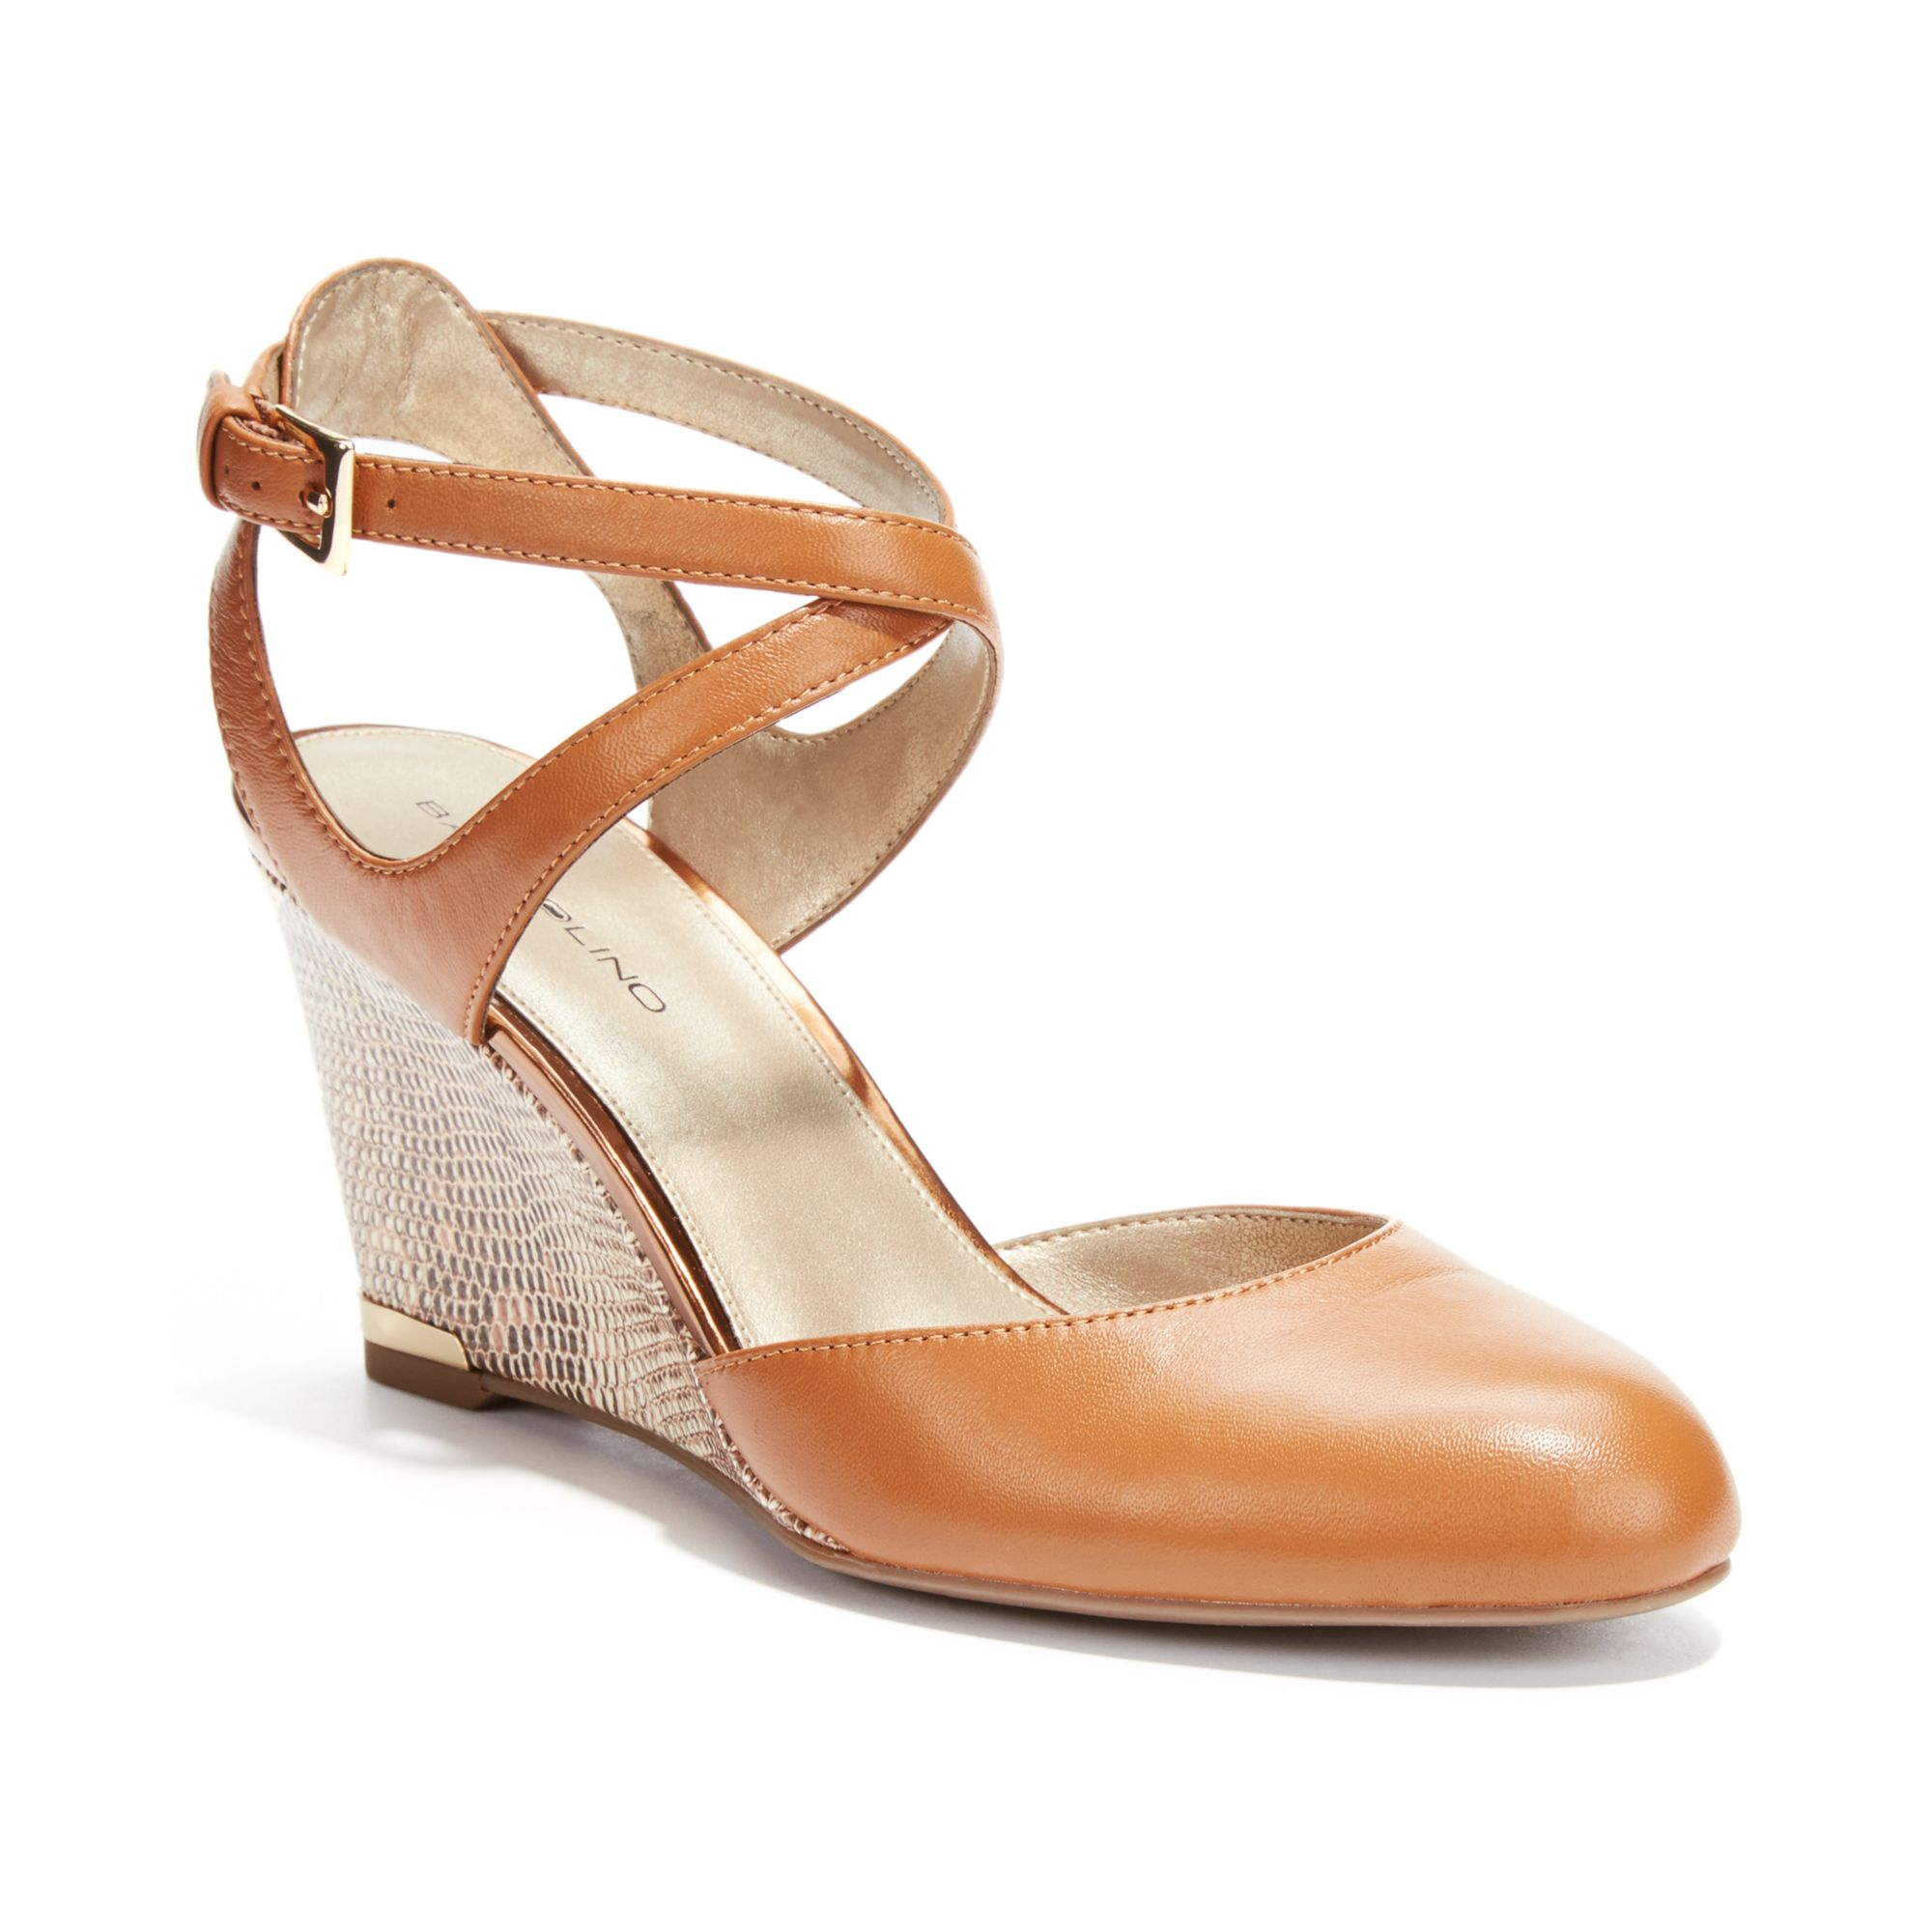 Lyst Bandolino Tania Wedge Pumps In Brown